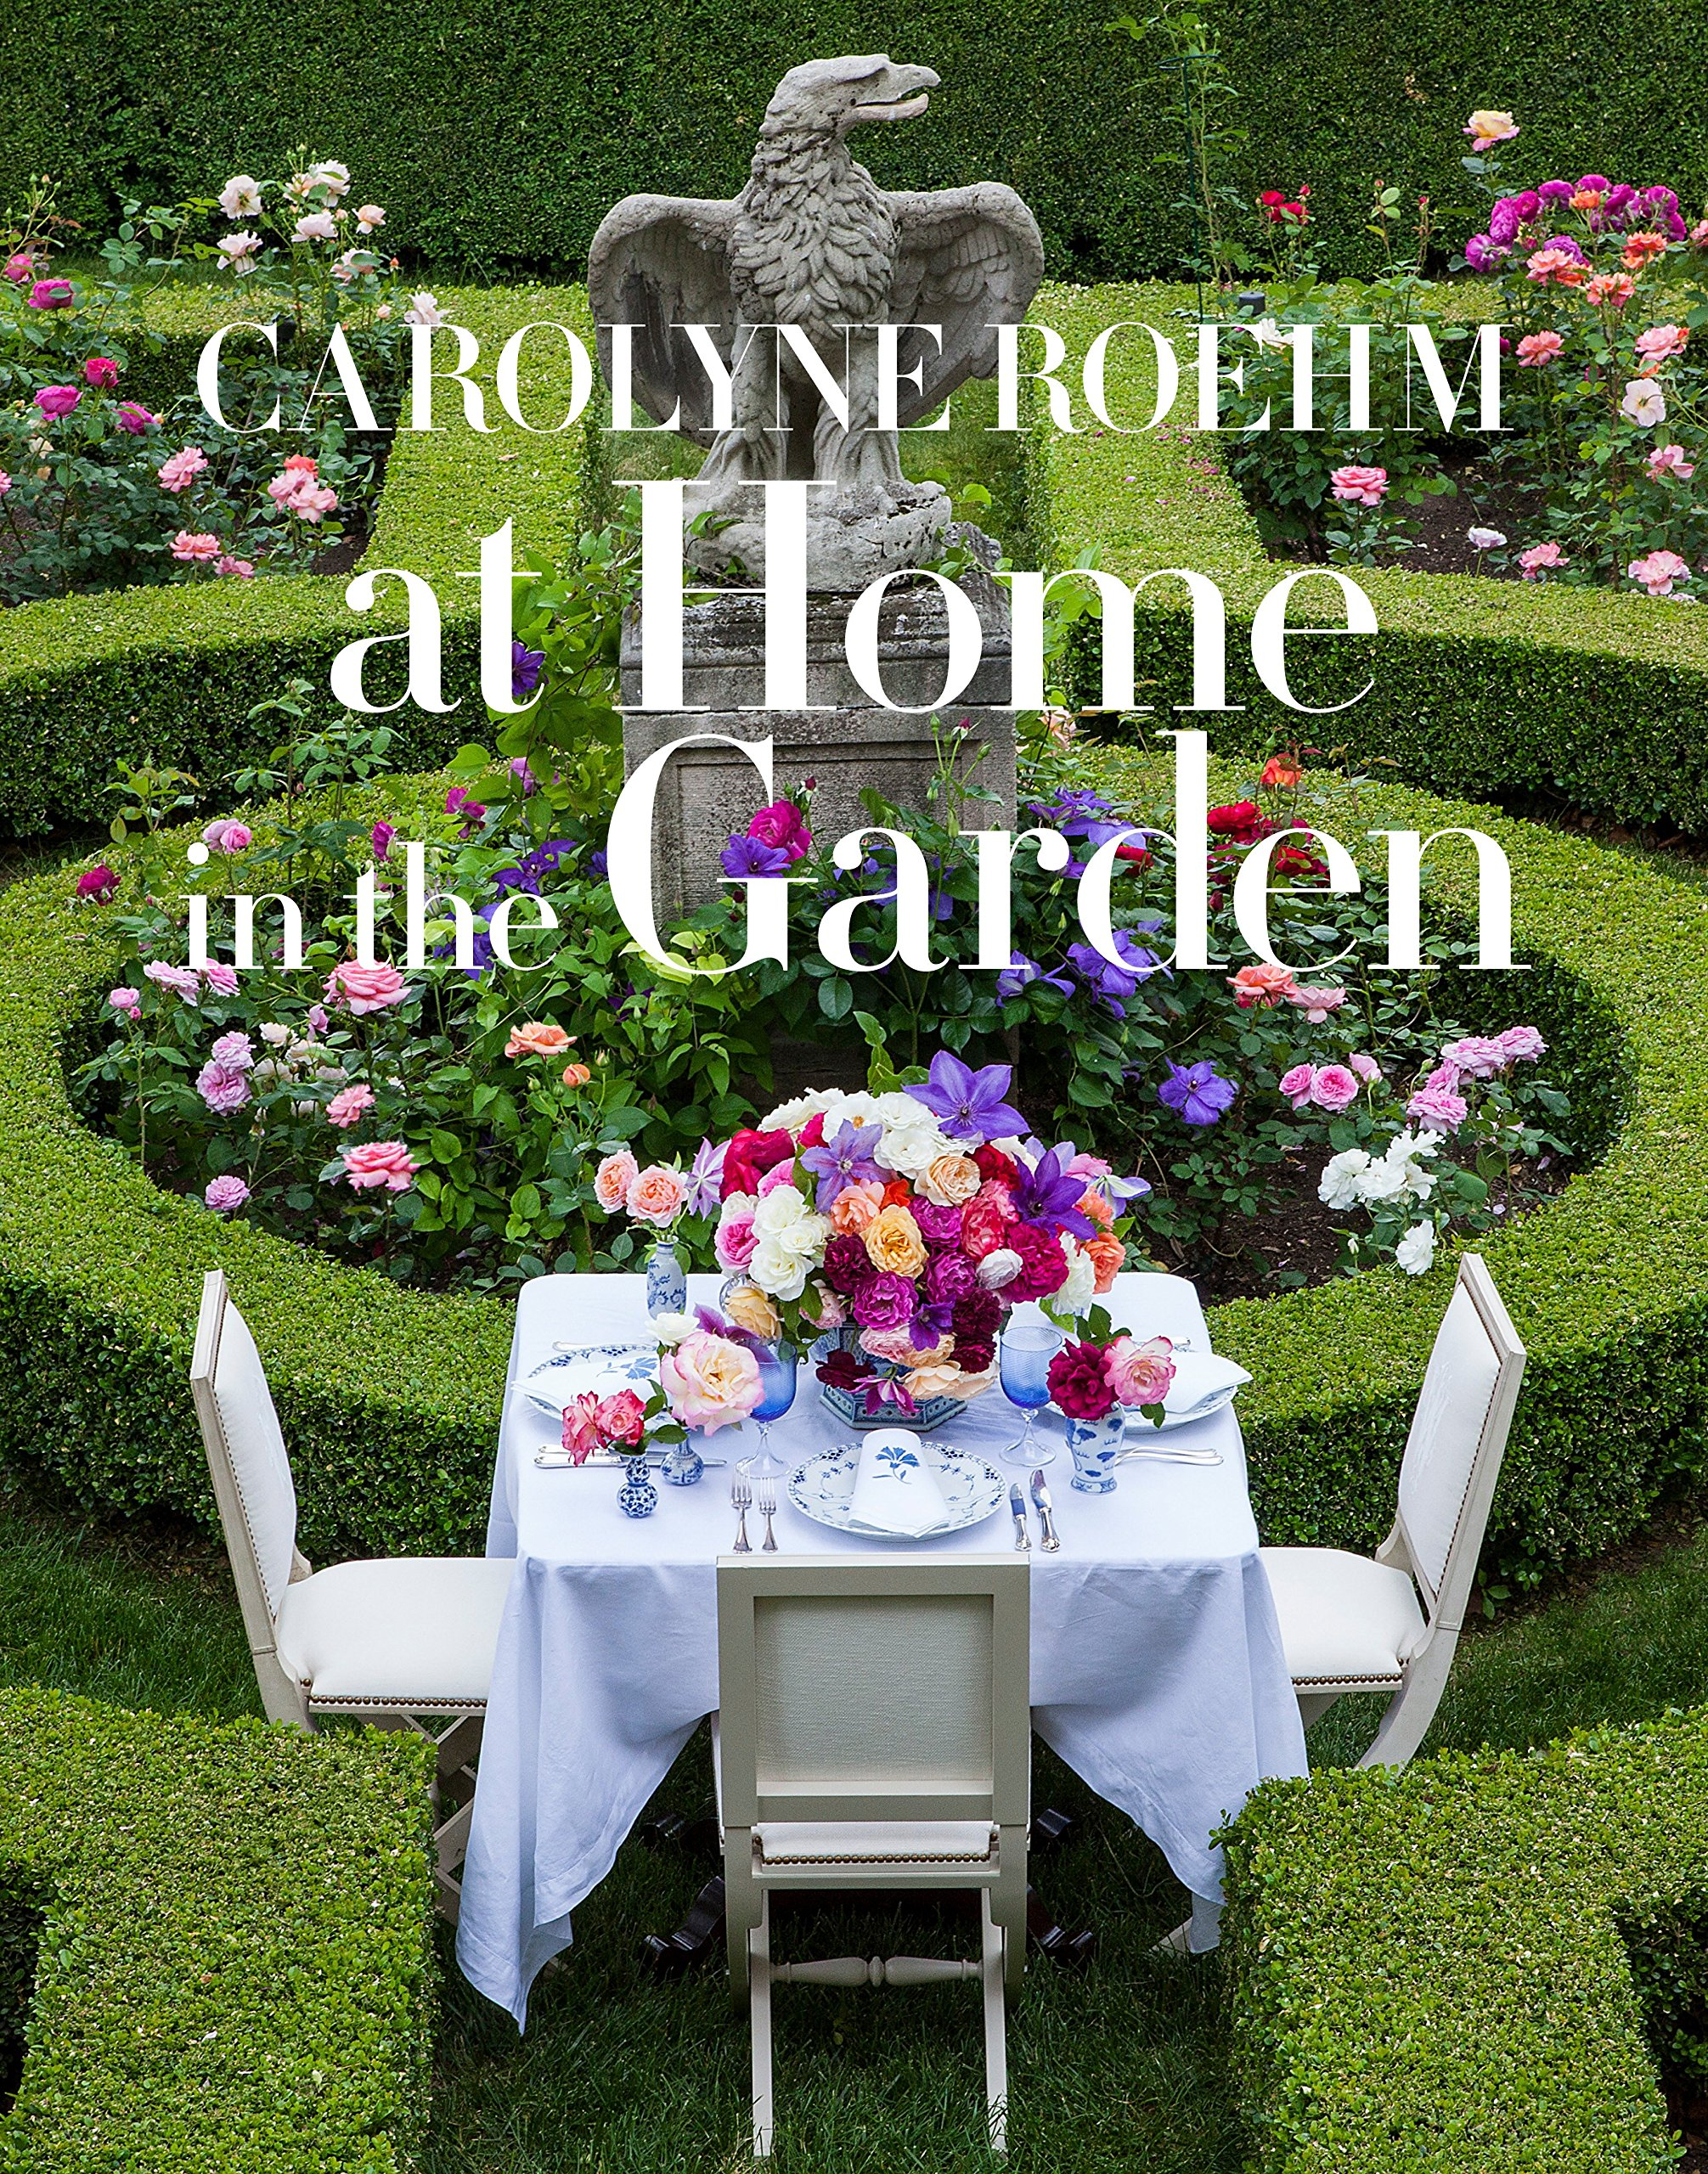 At Home in the Garden: Carolyne Roehm: 9781101903575: Amazon.com: Books